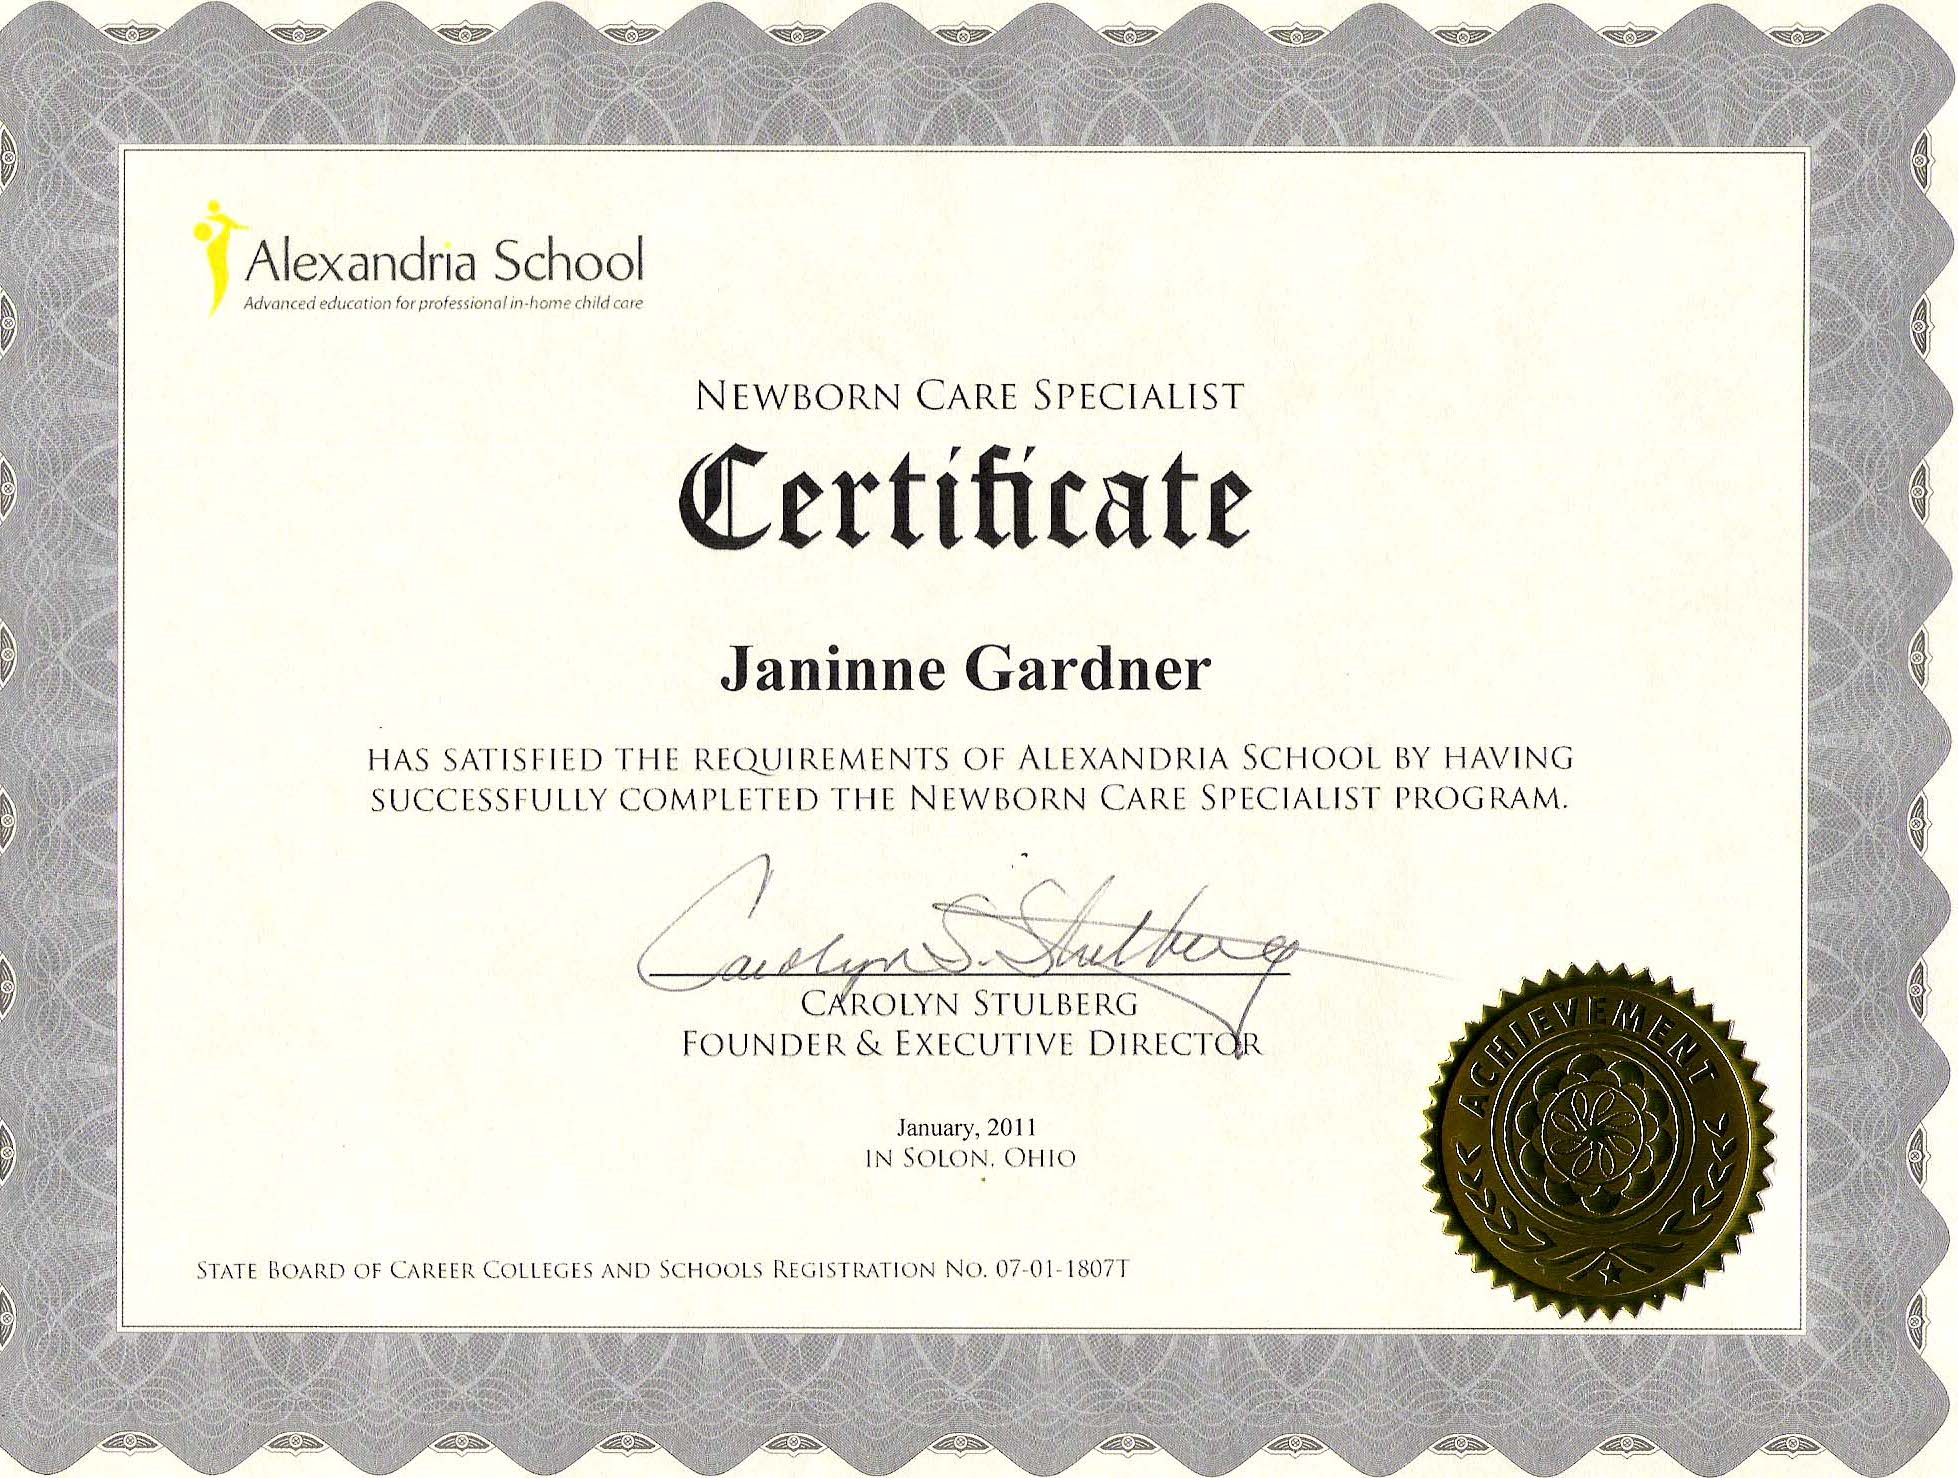 Education Certificates Janinne Gardner Newborn Care Specialist